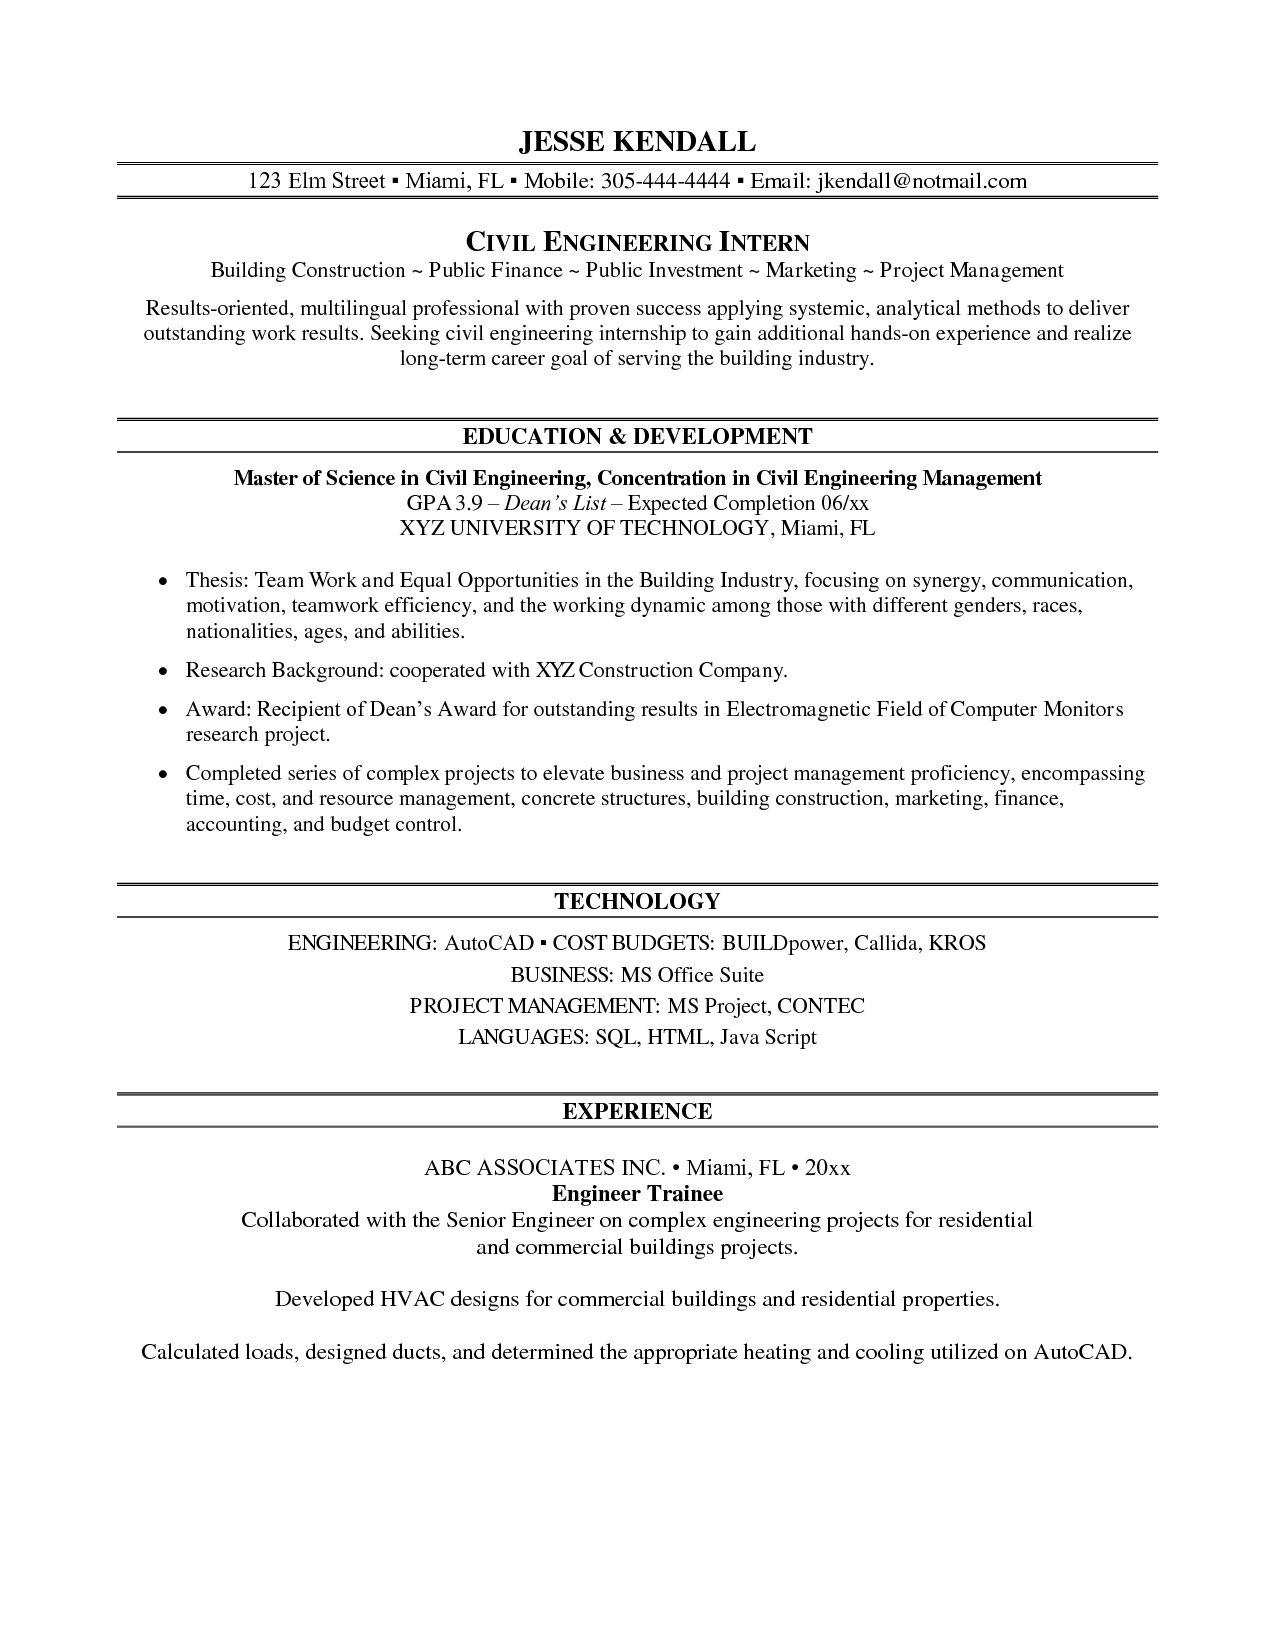 College Internship Resume Template Custom Internship On Resume Best Template Collection  Httpwww